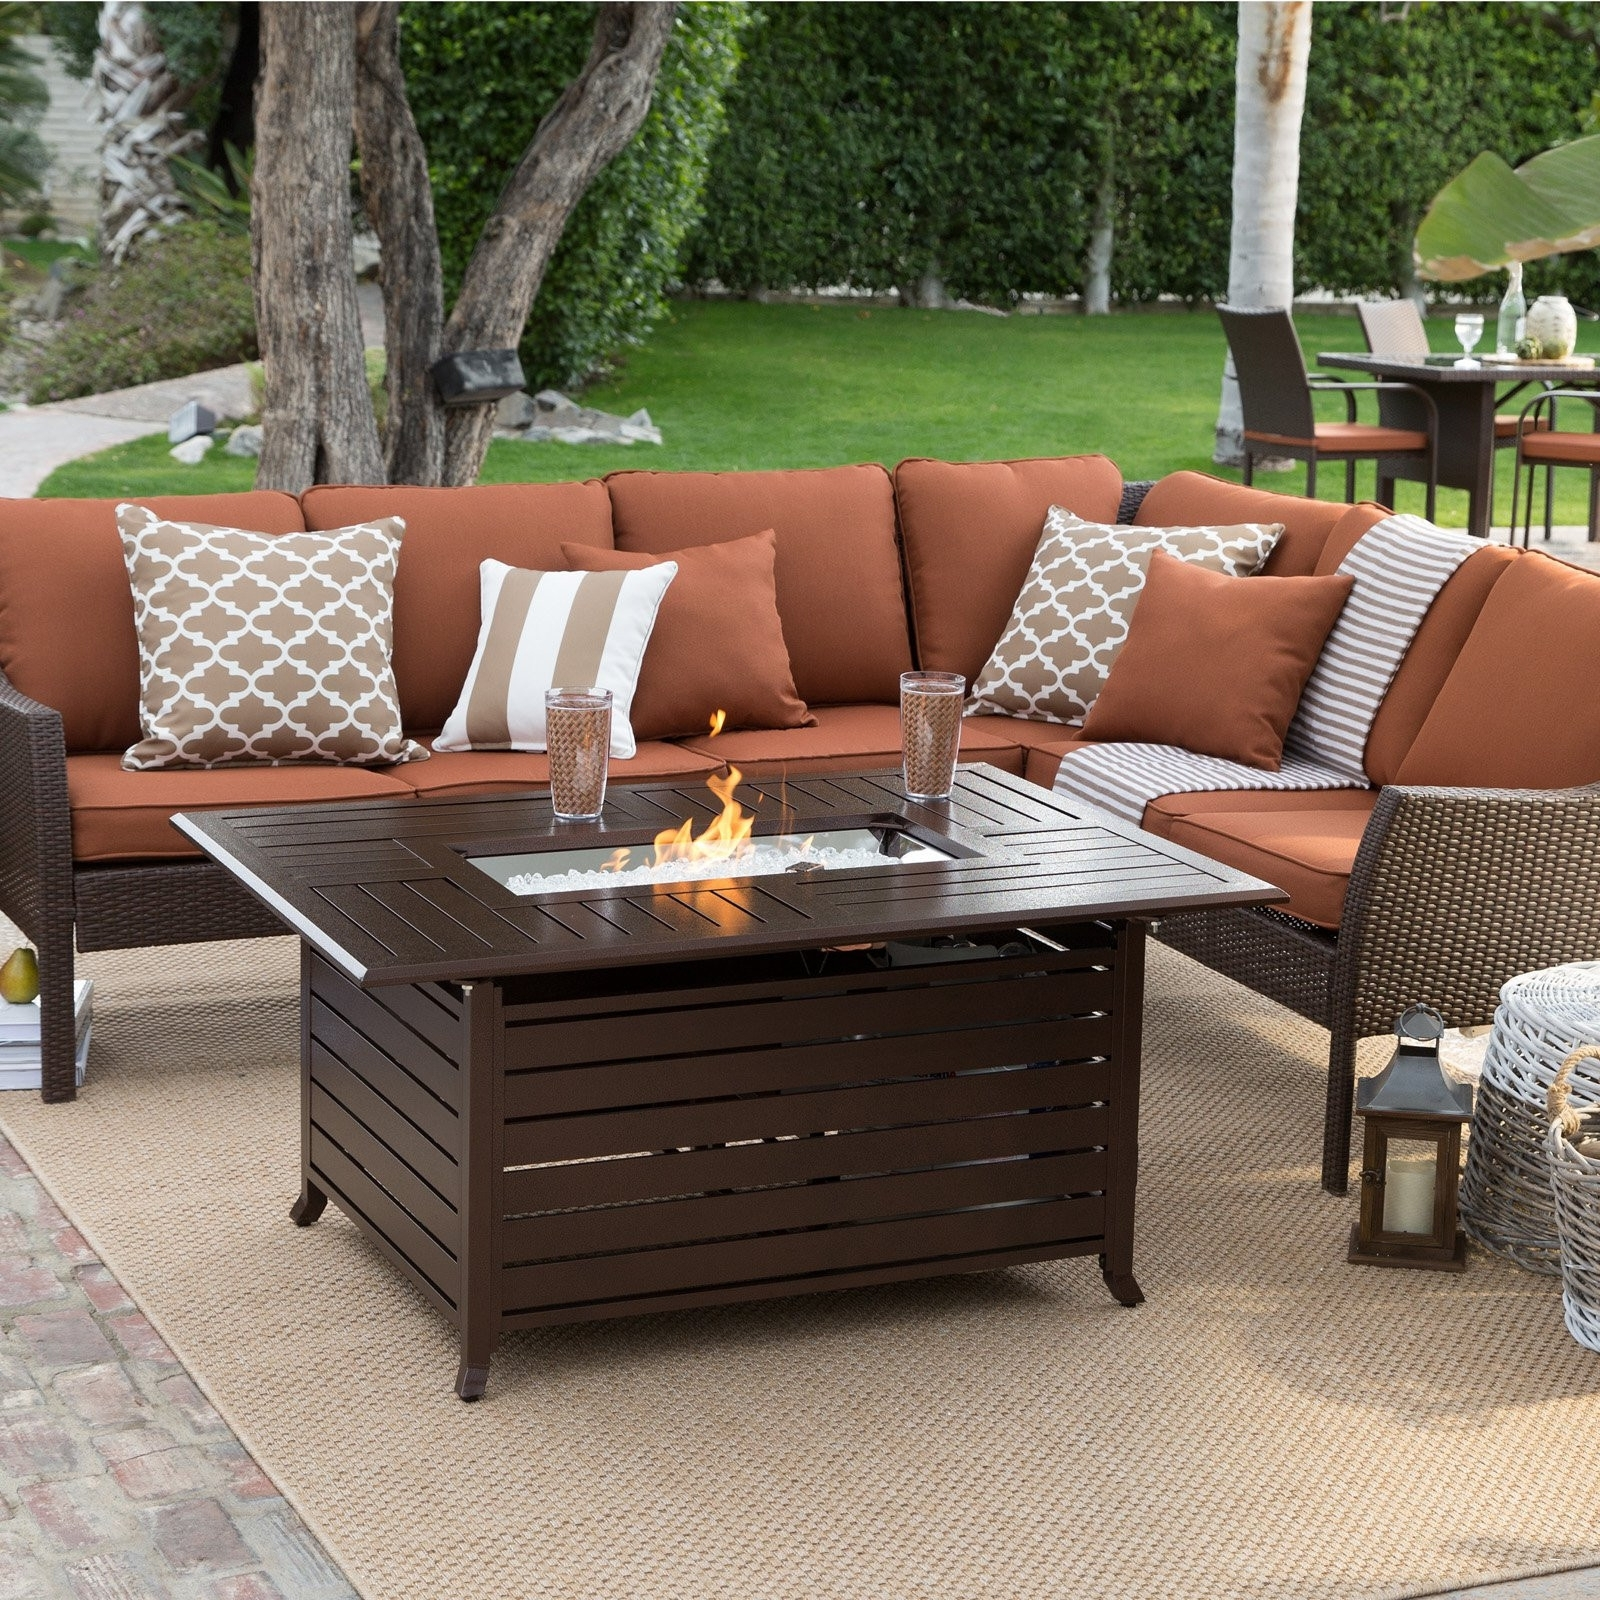 Favorite Patio Conversation Sets Under $500 For 30 The Best Outdoor Patio Set With Fire Pit Scheme – Bakken Design Build (View 14 of 20)